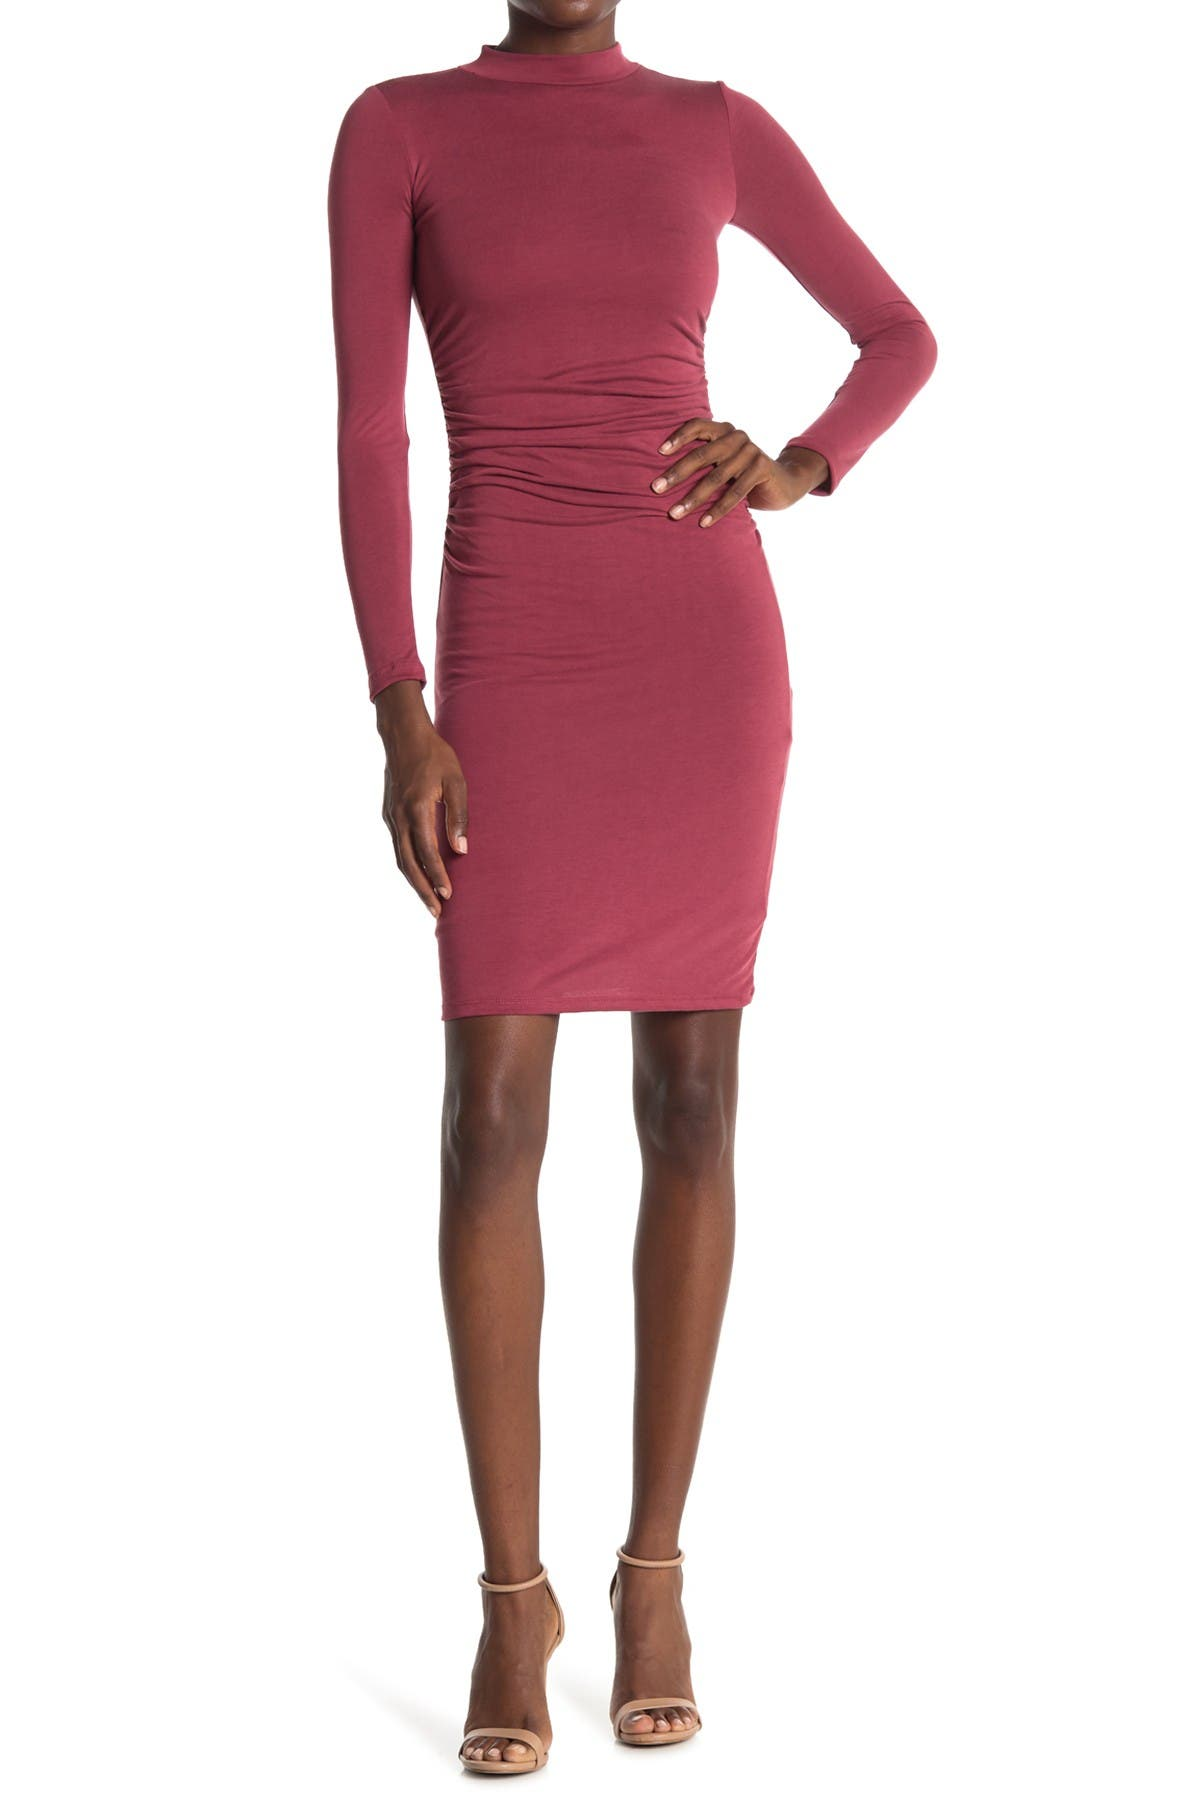 Image of Velvet Torch Long Sleeve Ruched Midi Dress